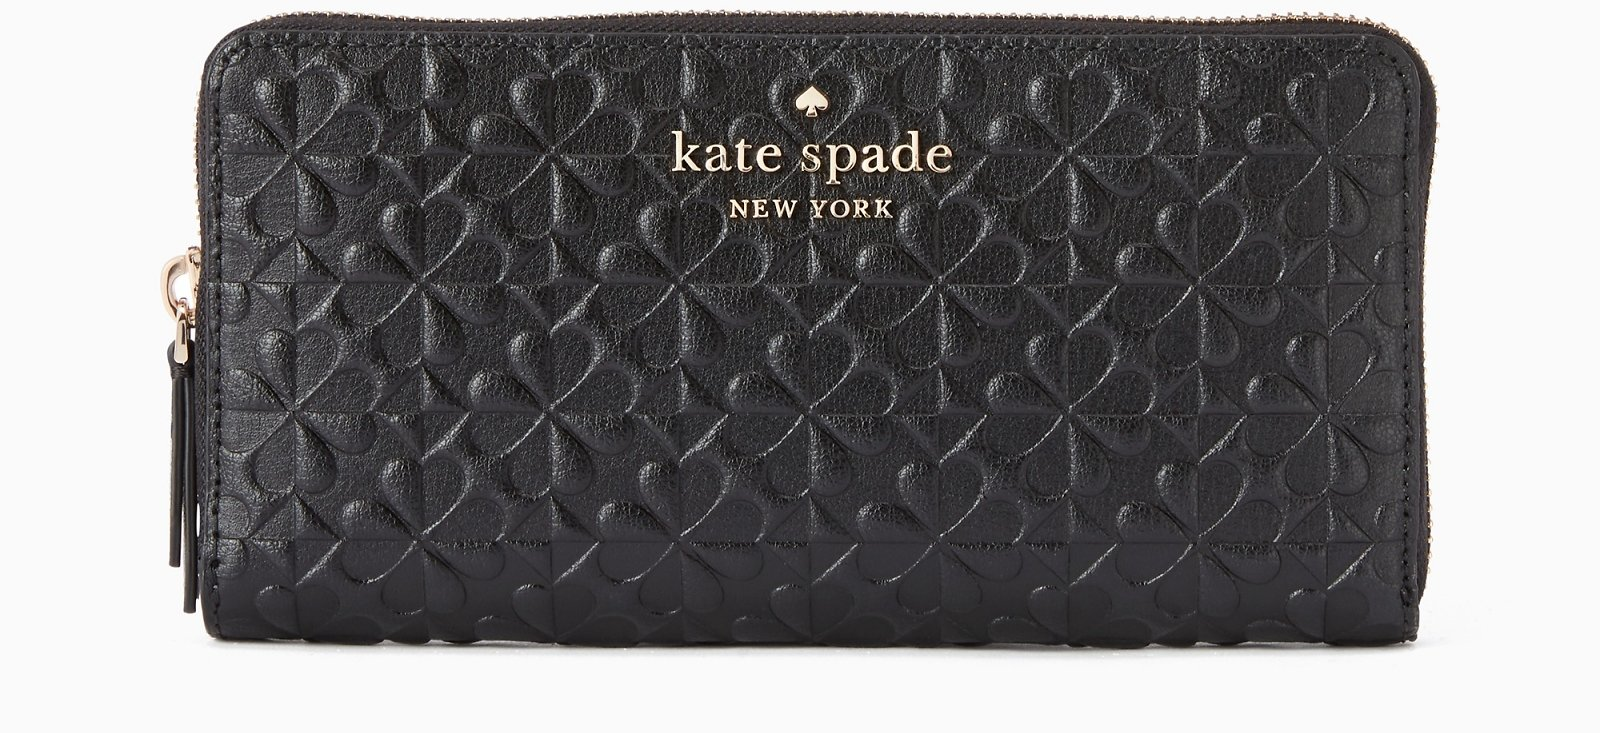 Hollie Spade Clover Geo Embossed Large Continental Leather Wallet